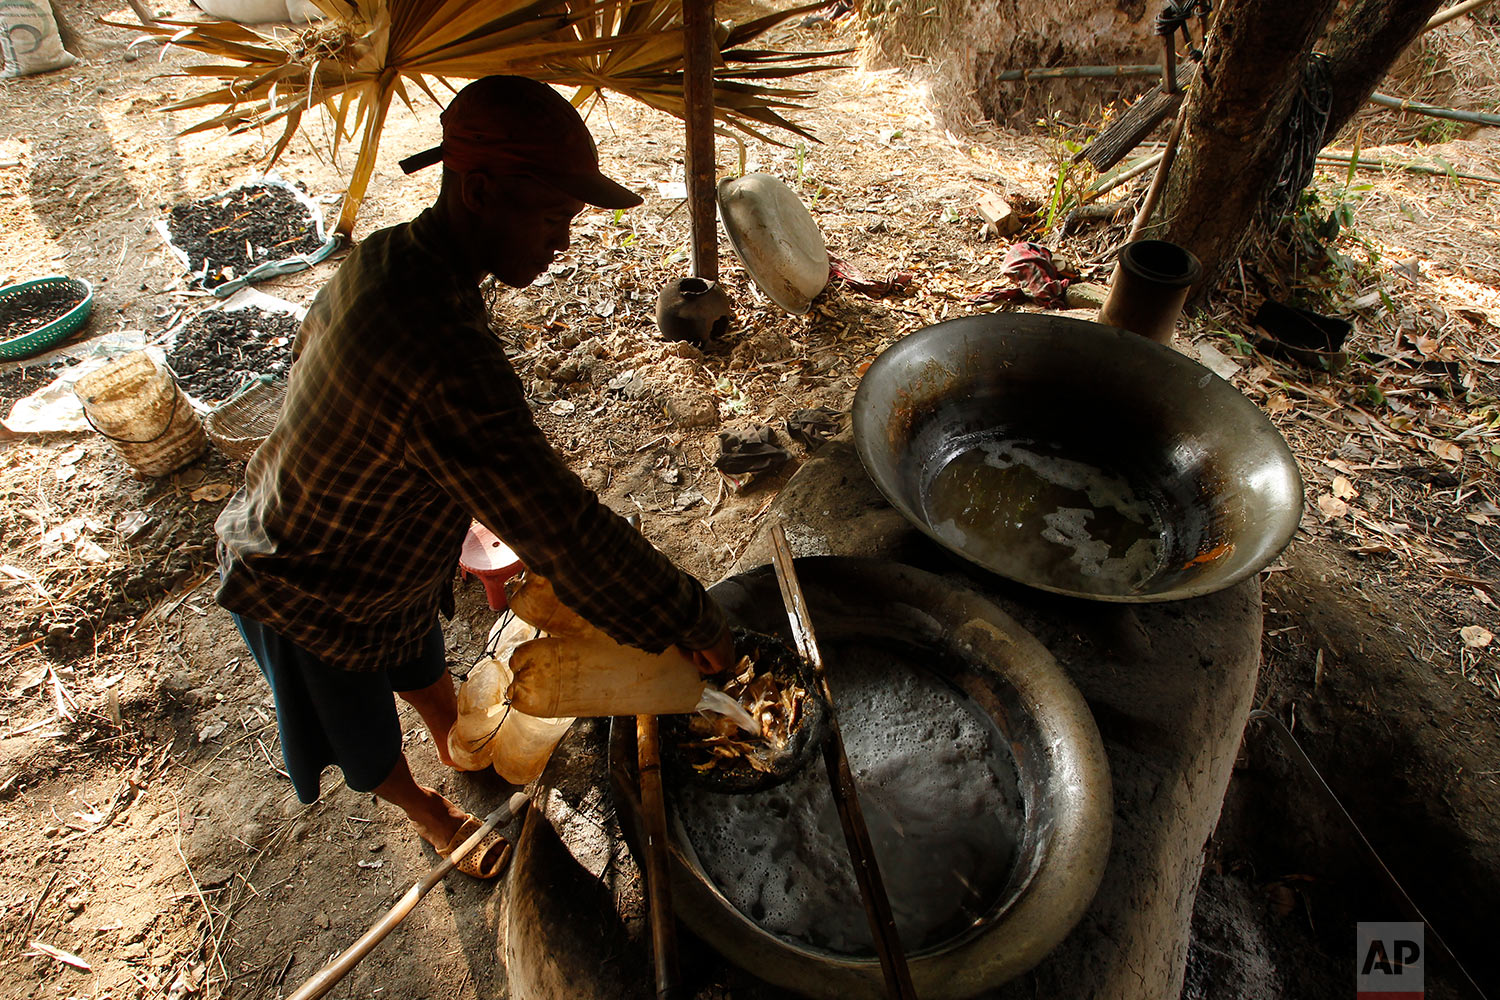 A man prepares palm sugar from the palm juice he collected from trees during its harvesting season at Samroang village on the north side of Phnom Penh, Cambodia, Thursday, Dec. 14, 2017. Some villagers earn up to $7 a day collecting palm juice as part of their daily income. (AP Photo/Heng Sinith)